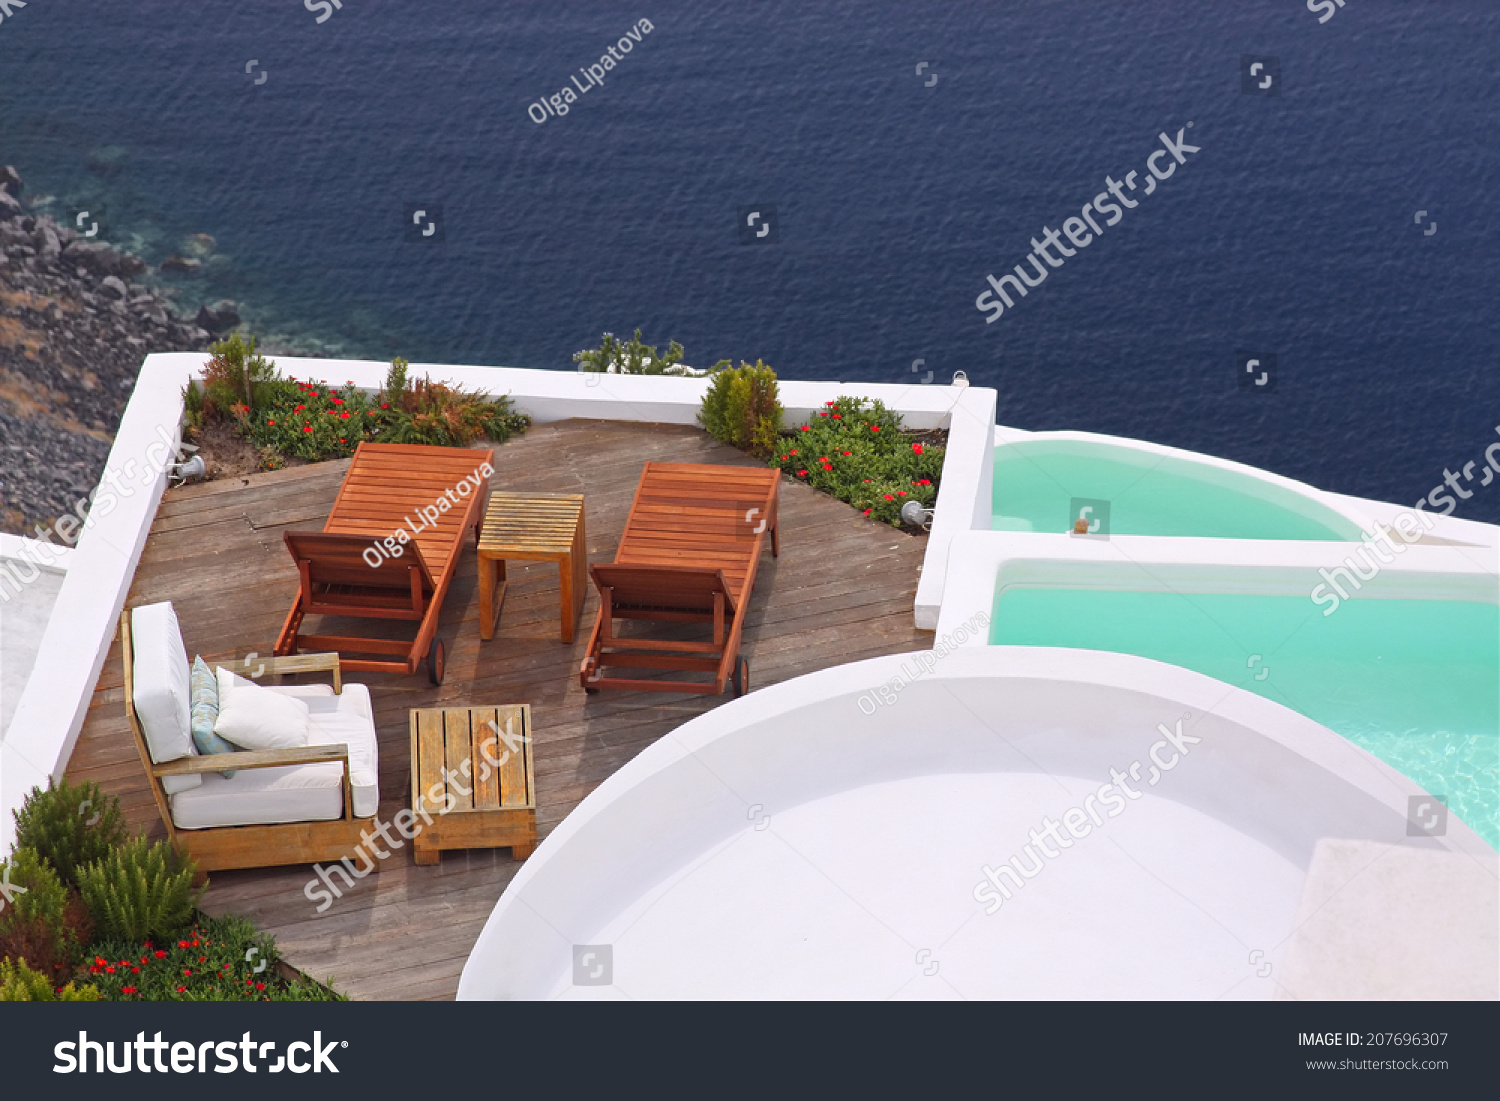 Pool Deck Chairs Terrace Deck Chairs Water Pool View Stock Photo Edit Now